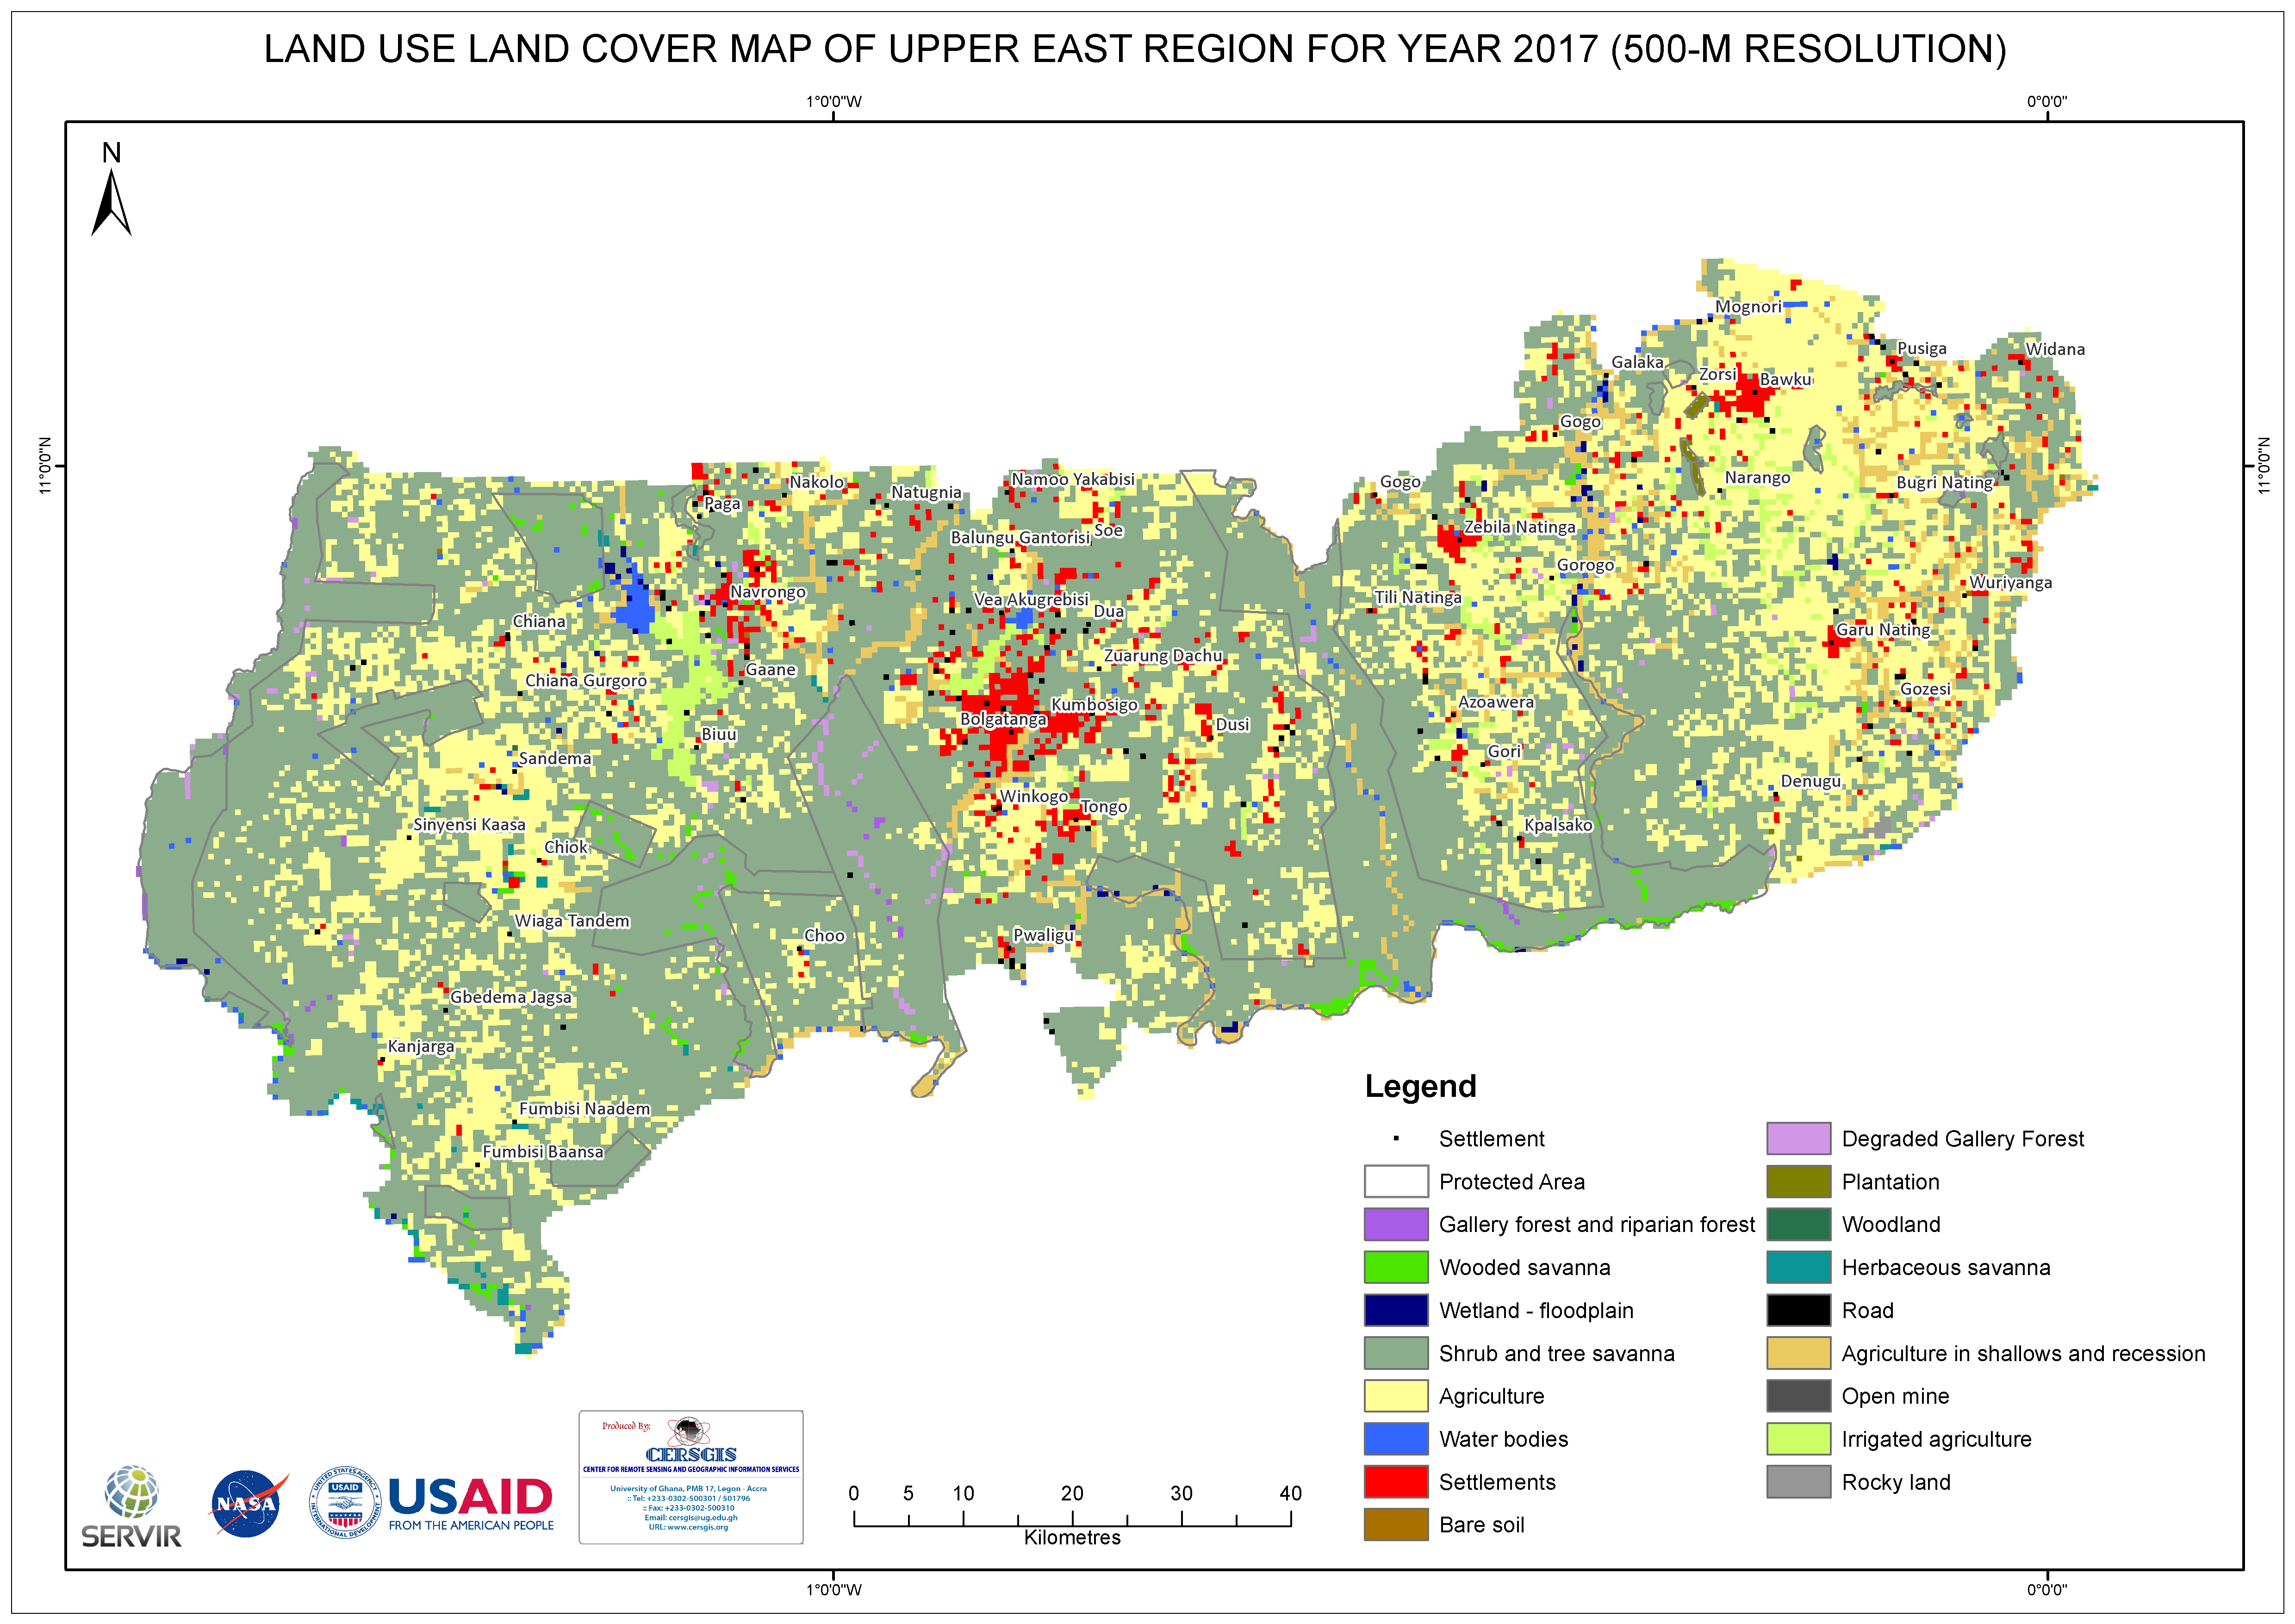 Land Cover Map for Upper East Region